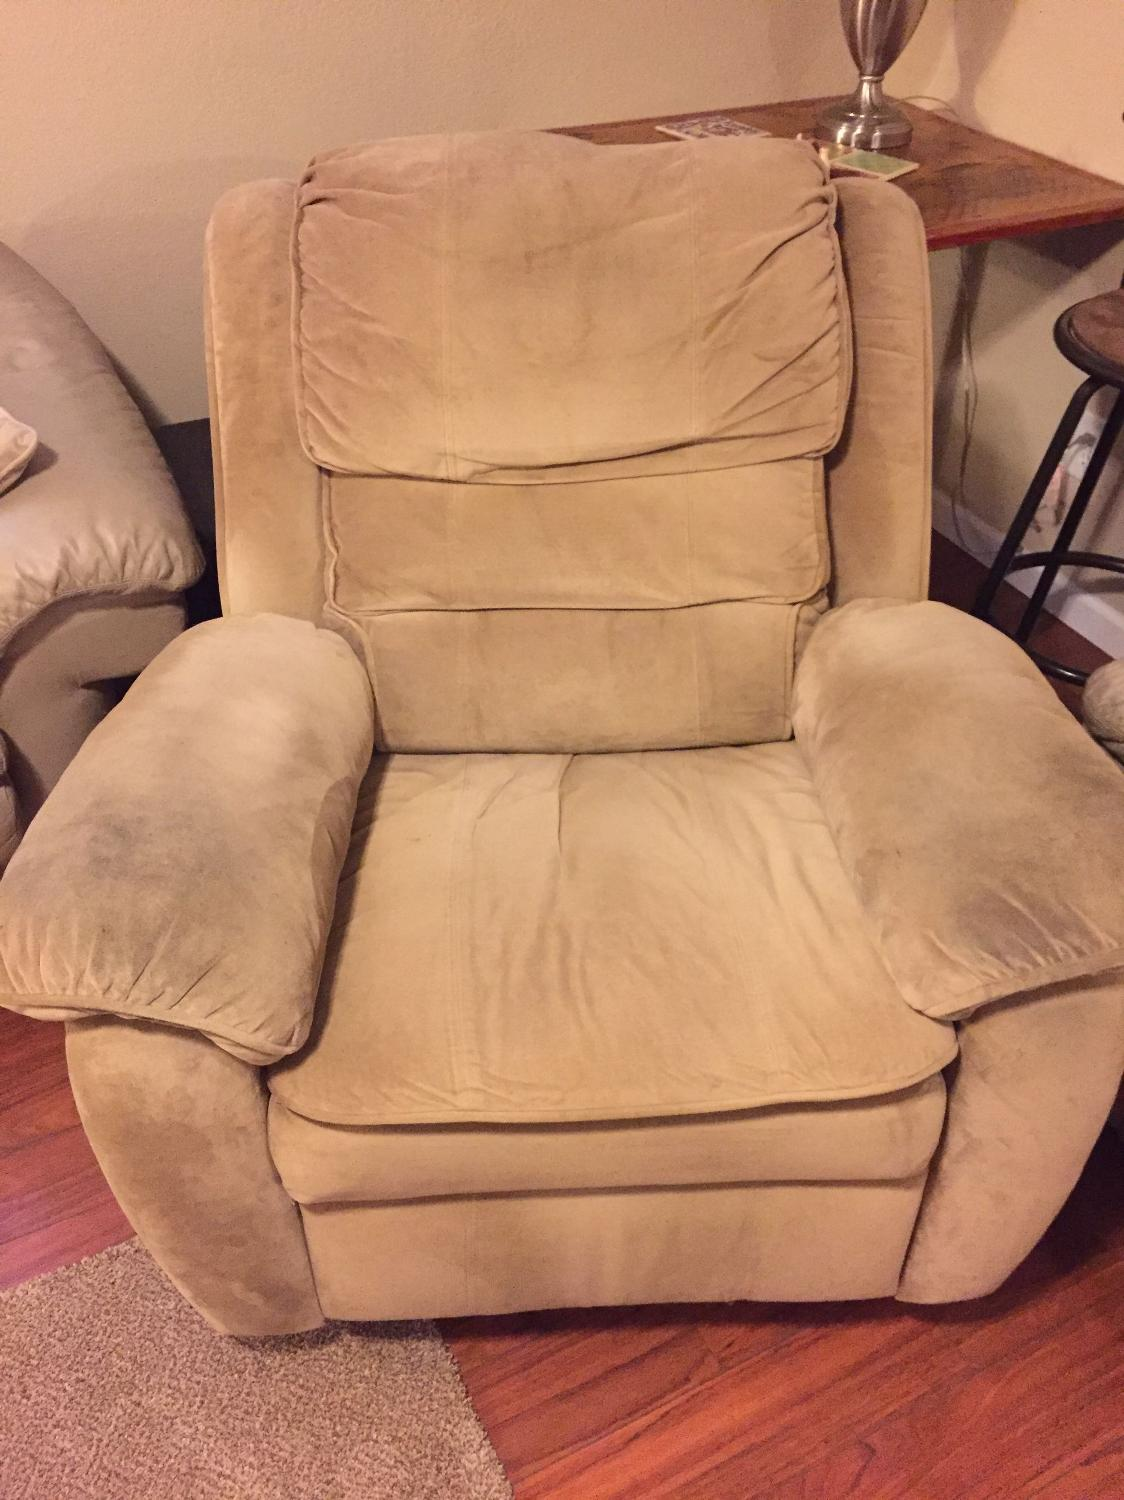 Find More Tan Recliner For Sale At Up To 90 Off Appleton Wi